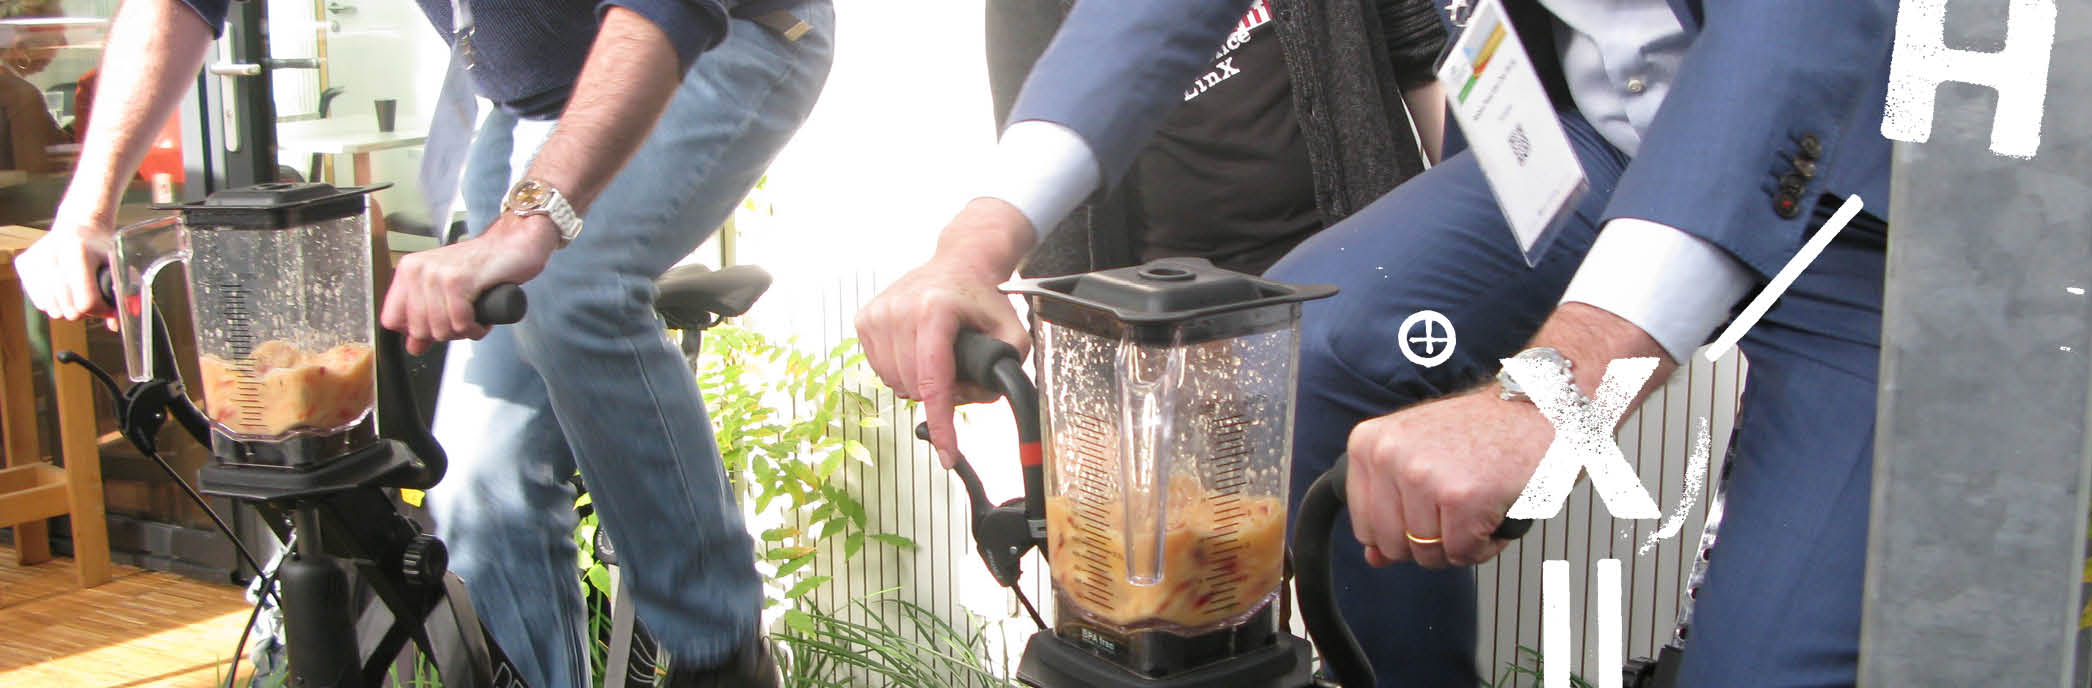 Flashback Climate Conference - cycling energy smoothies!